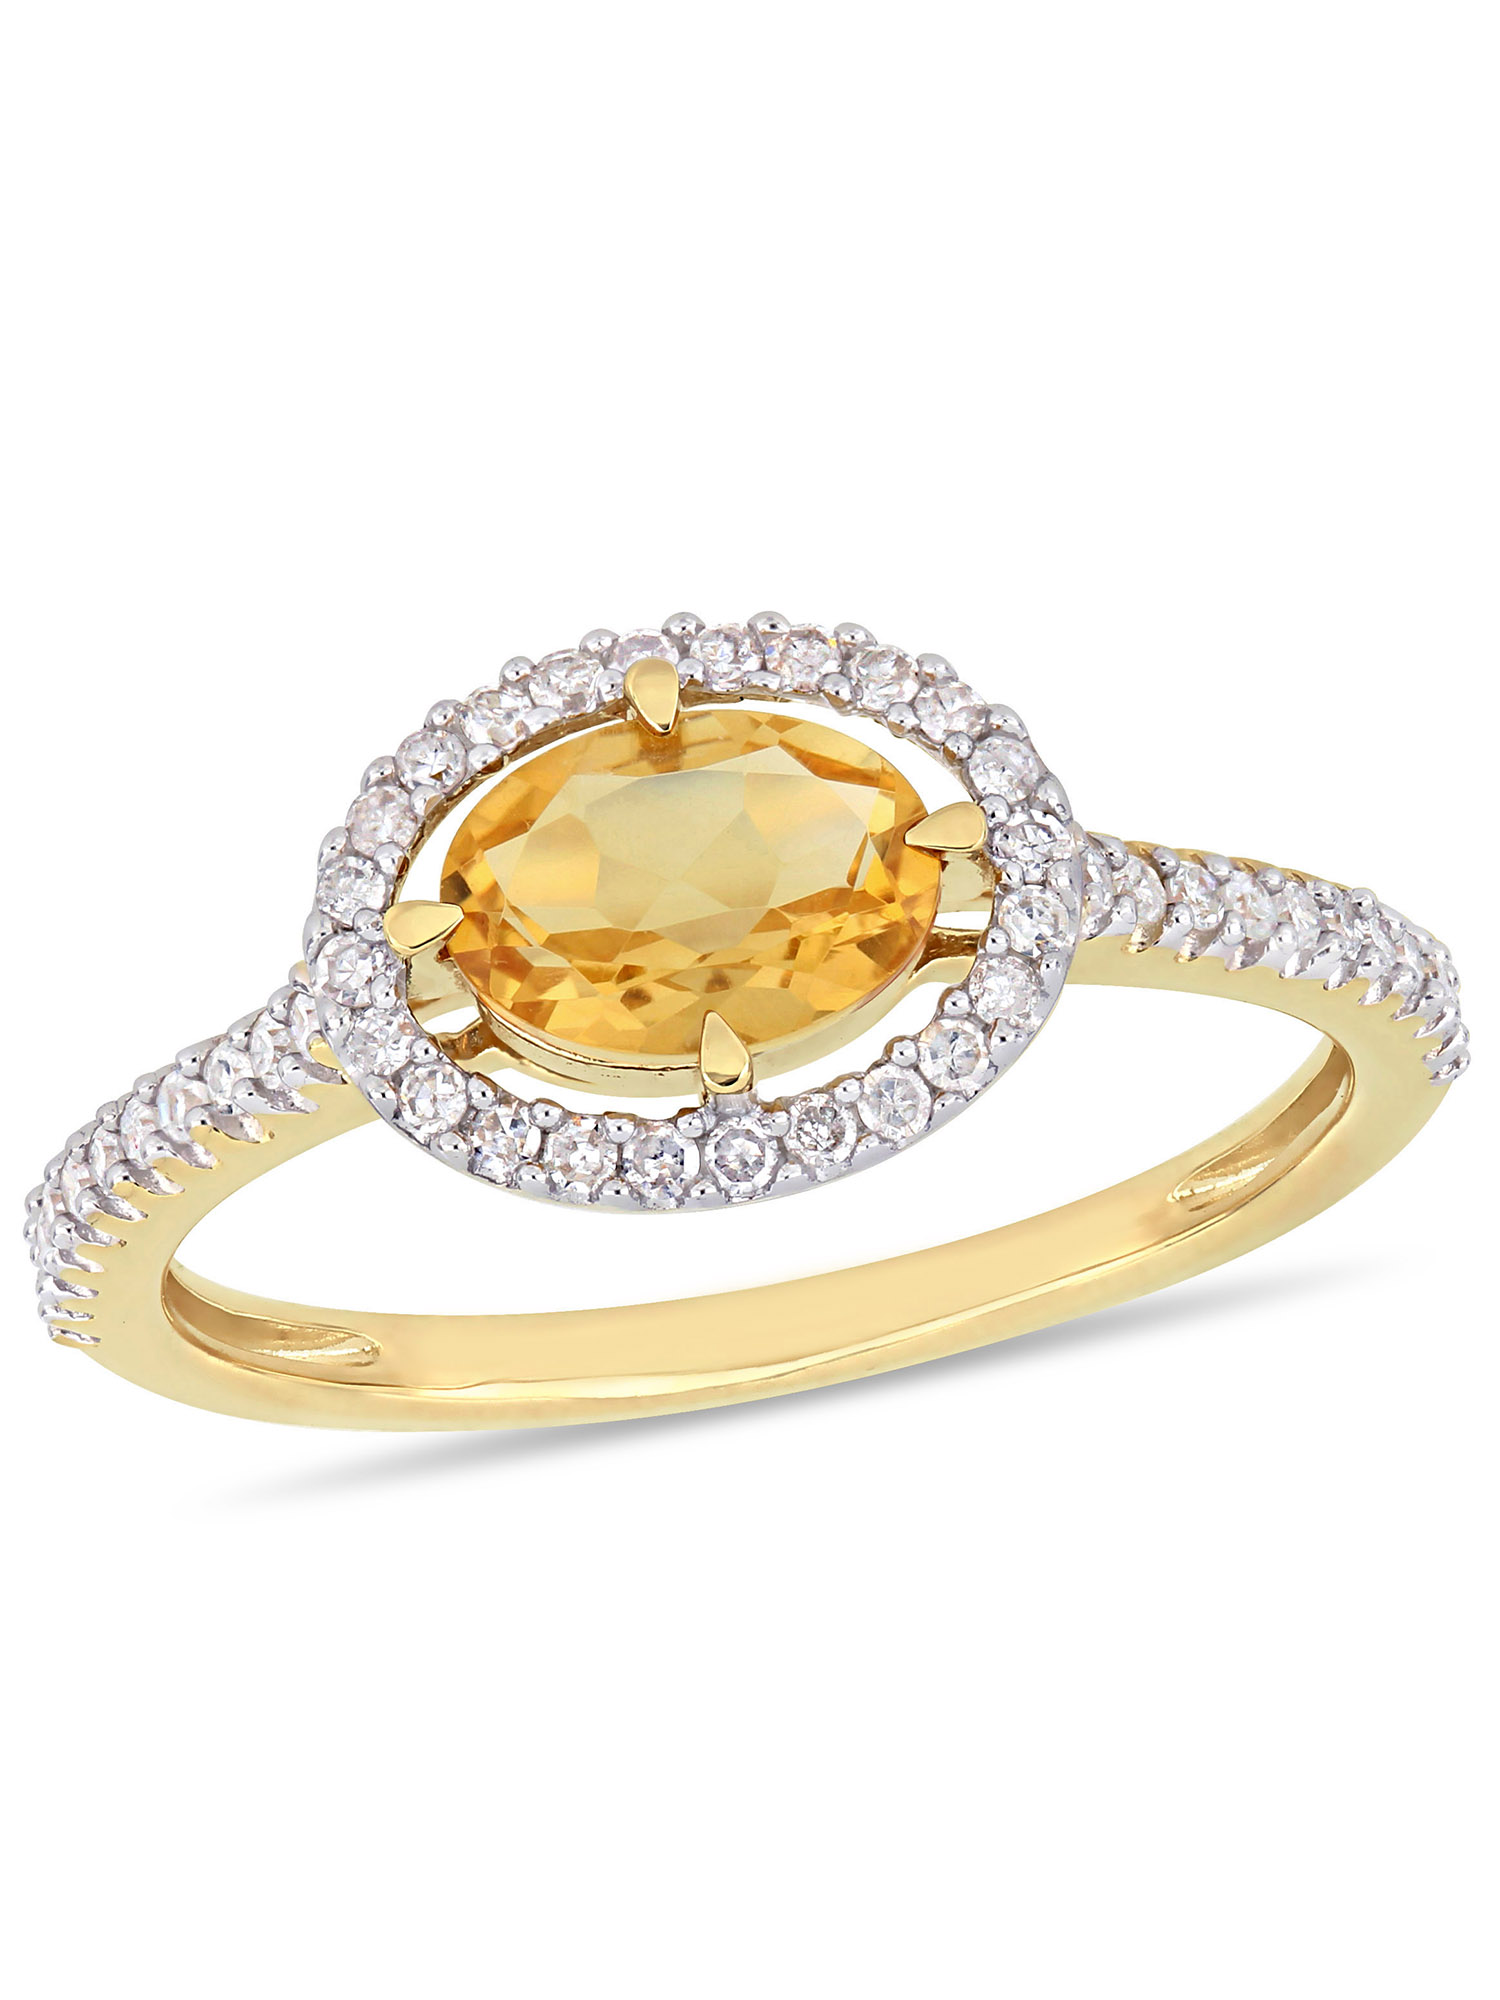 Tangelo 3/4 Carat T.G.W. Citrine and 1/4 Carat T.W. Diamond 10kt Yellow Gold Halo Engagement Ring